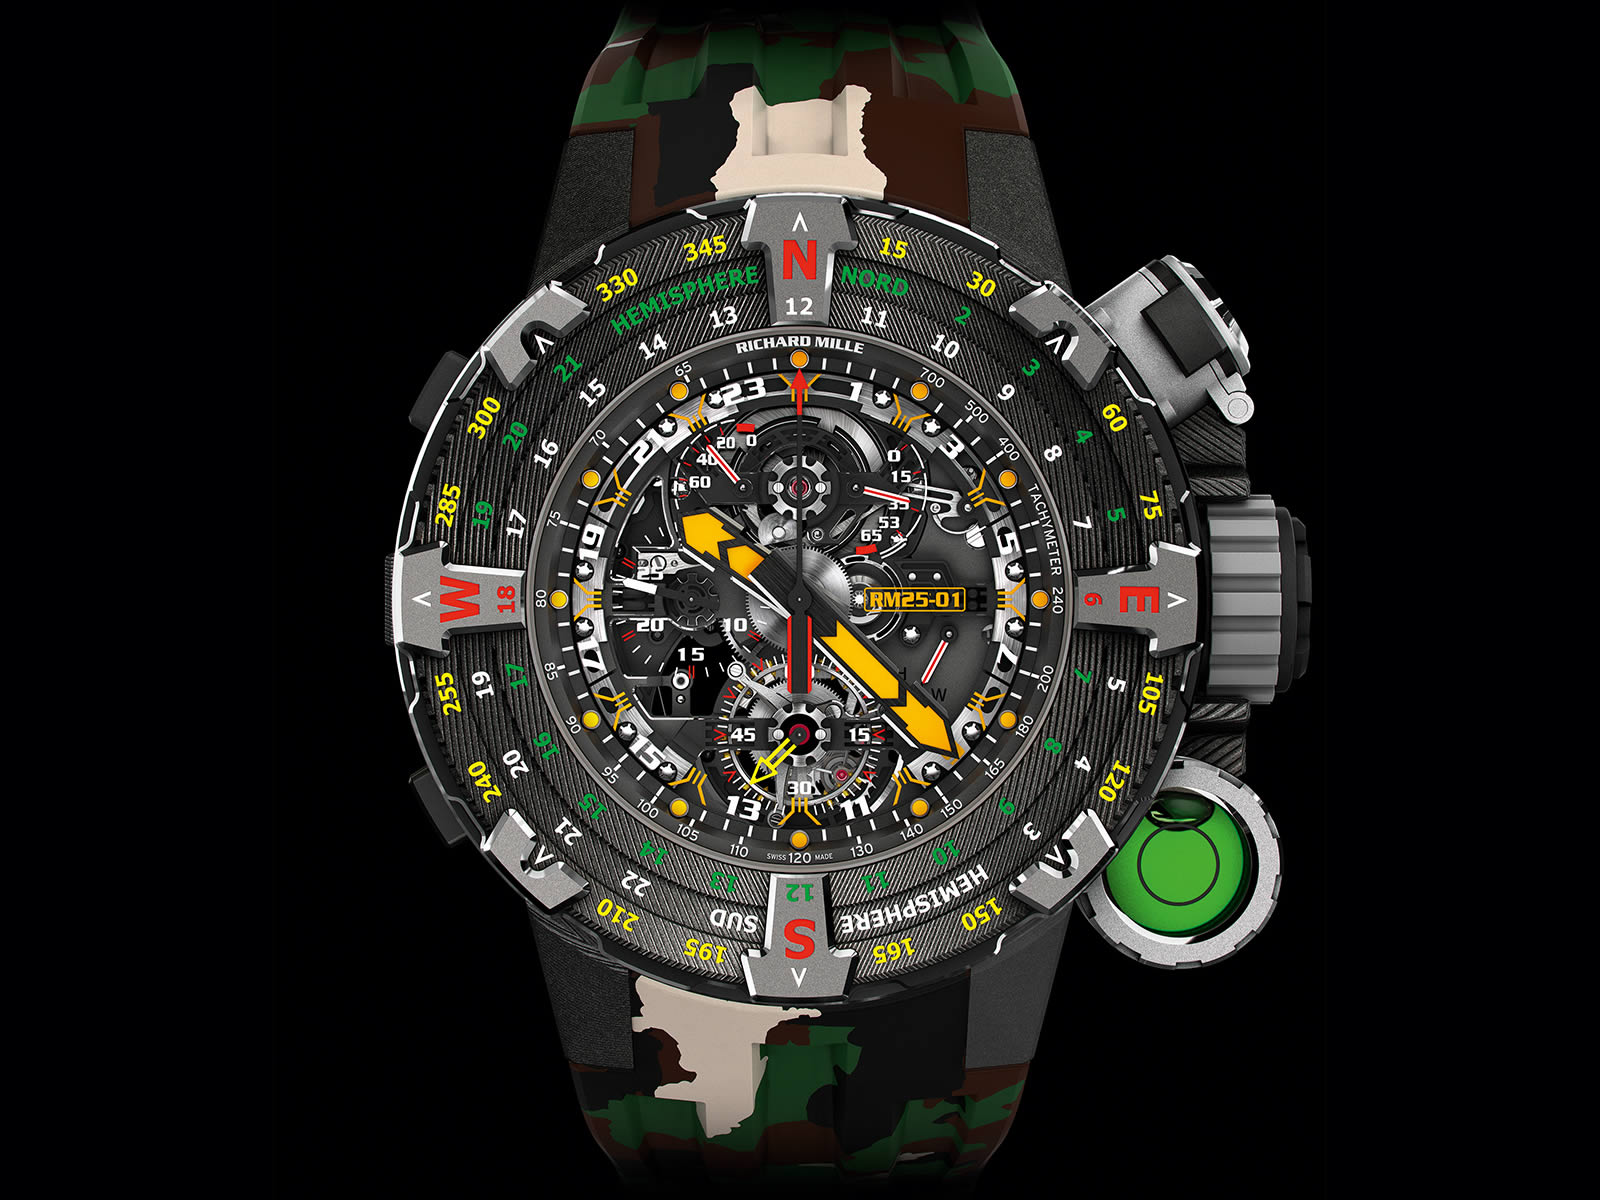 richard-mille-rm-25-01-tourbillon-adventure-sylvester-stallone-1-.jpg